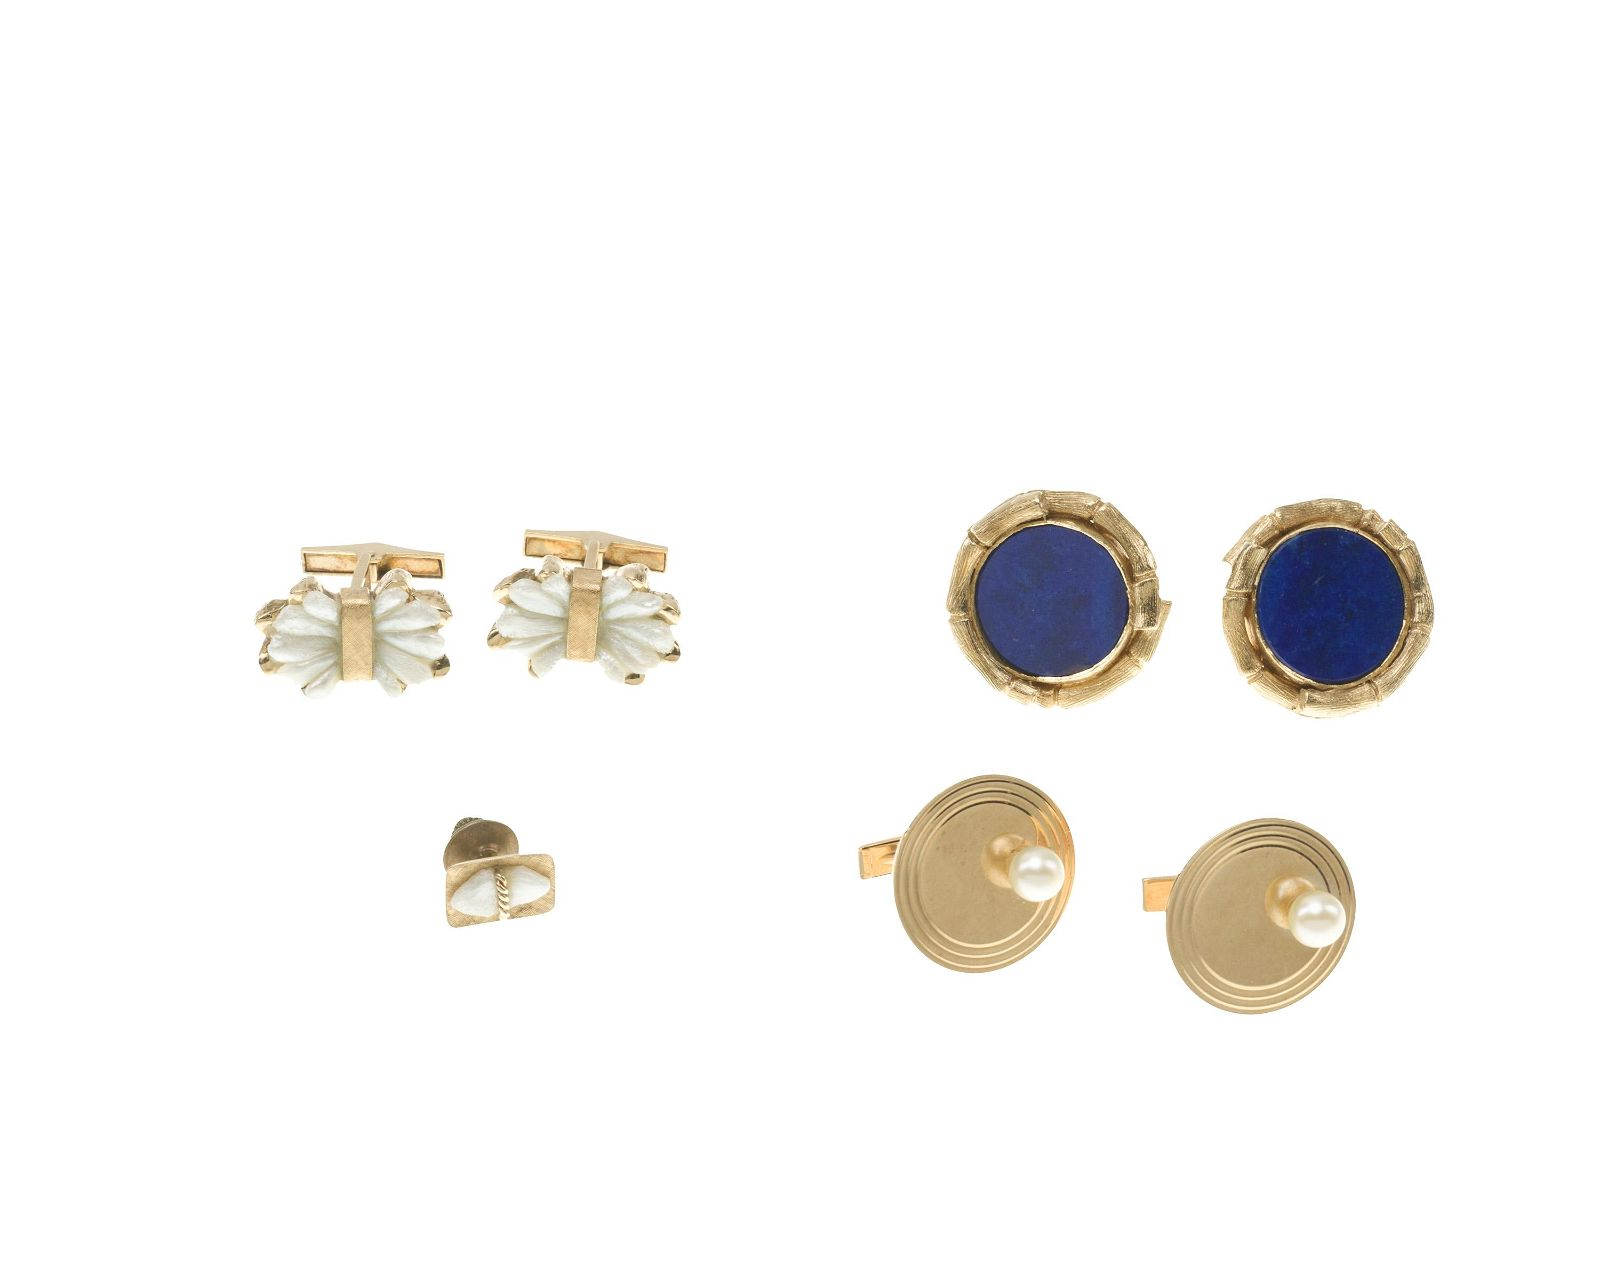 A group of gold and gemstone dress items